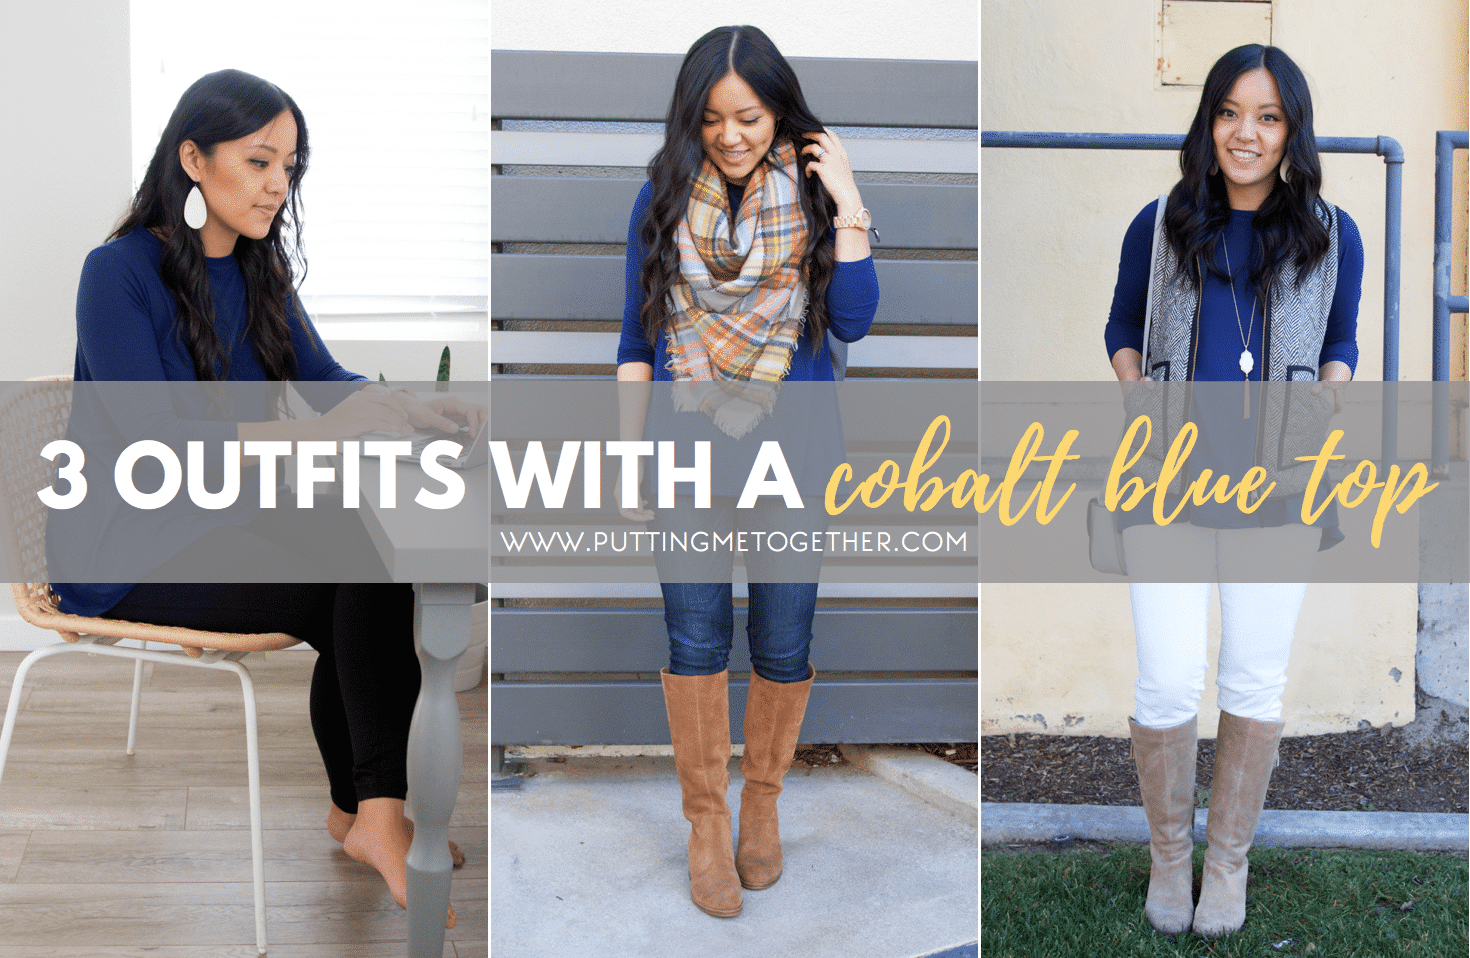 3 Outfits with a Cobalt Blue Top